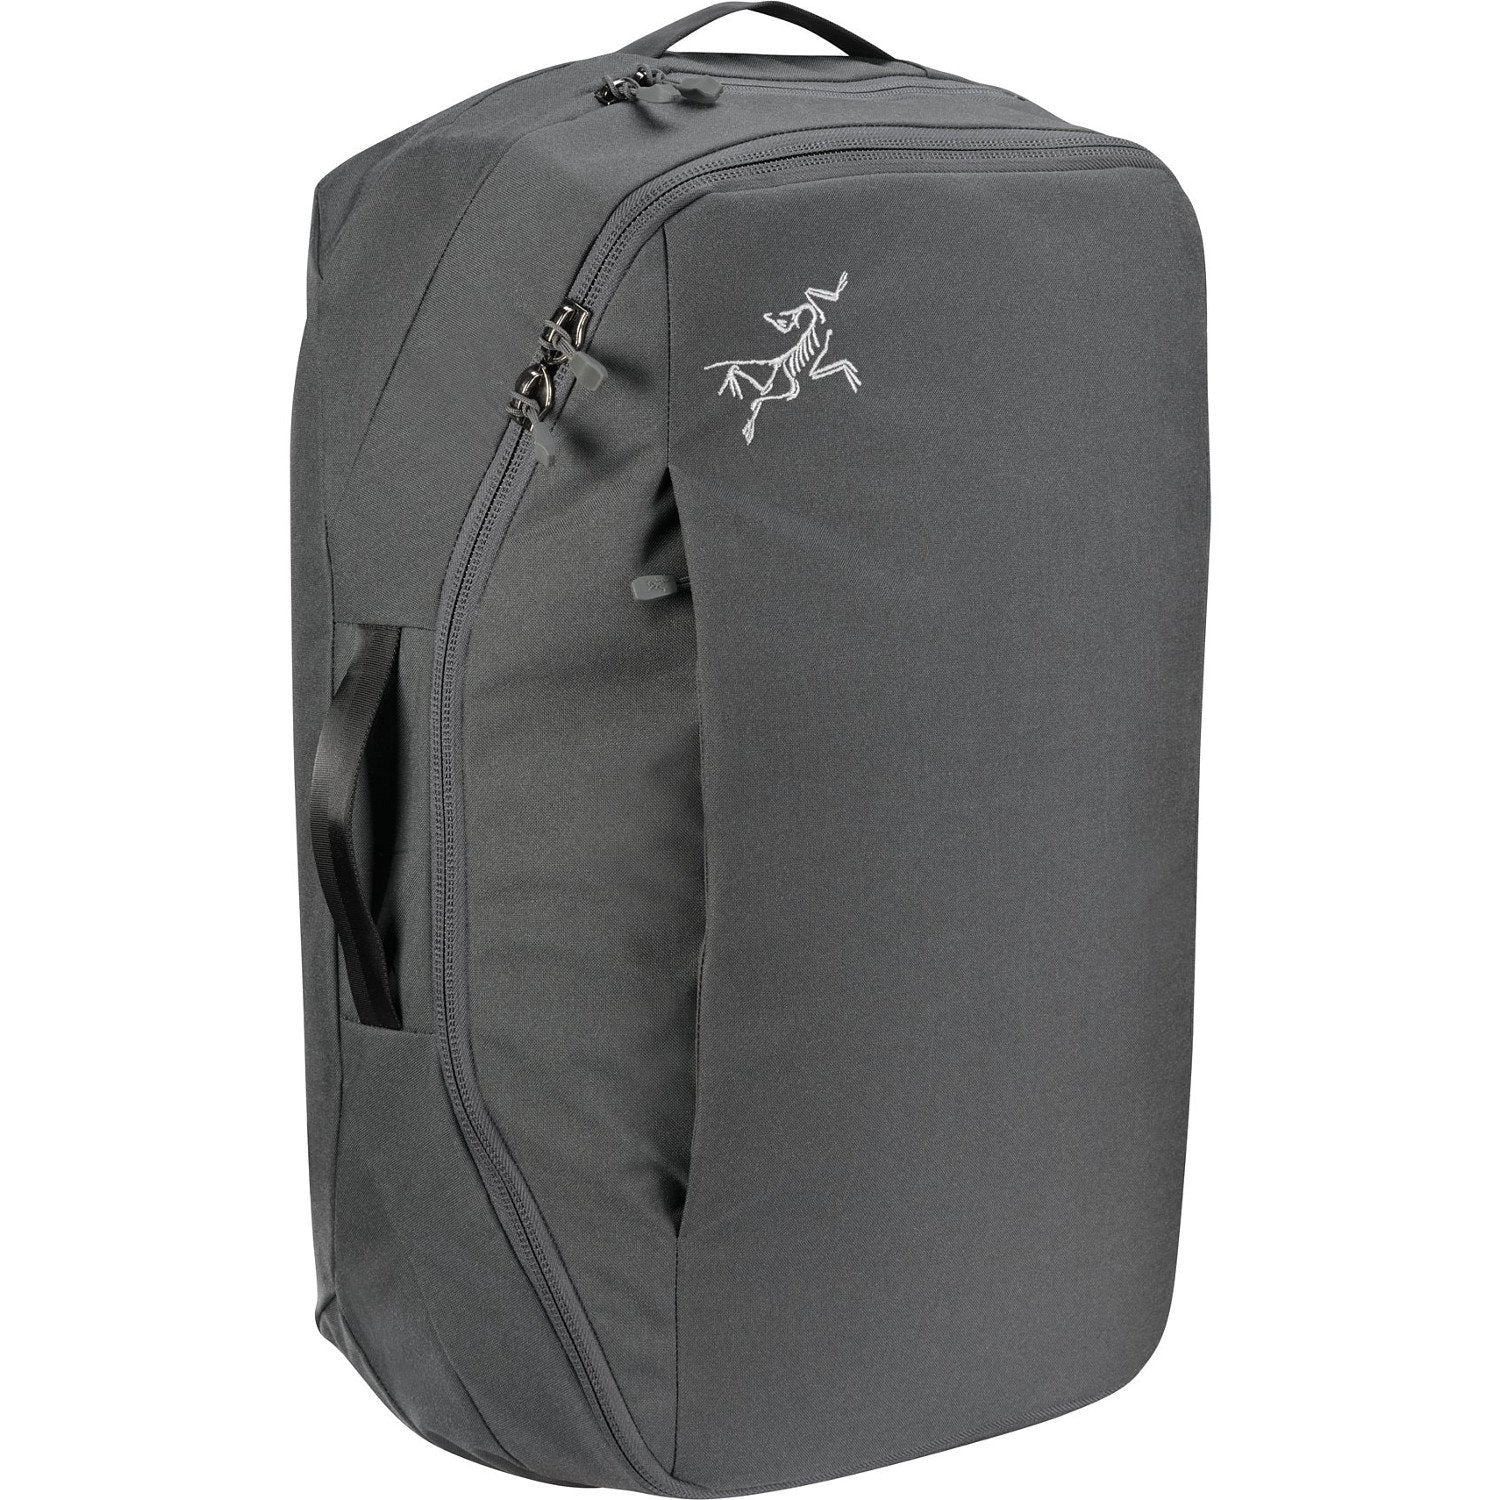 ArcTeryx Covert Case Carry On, in dark grey colour fully closed